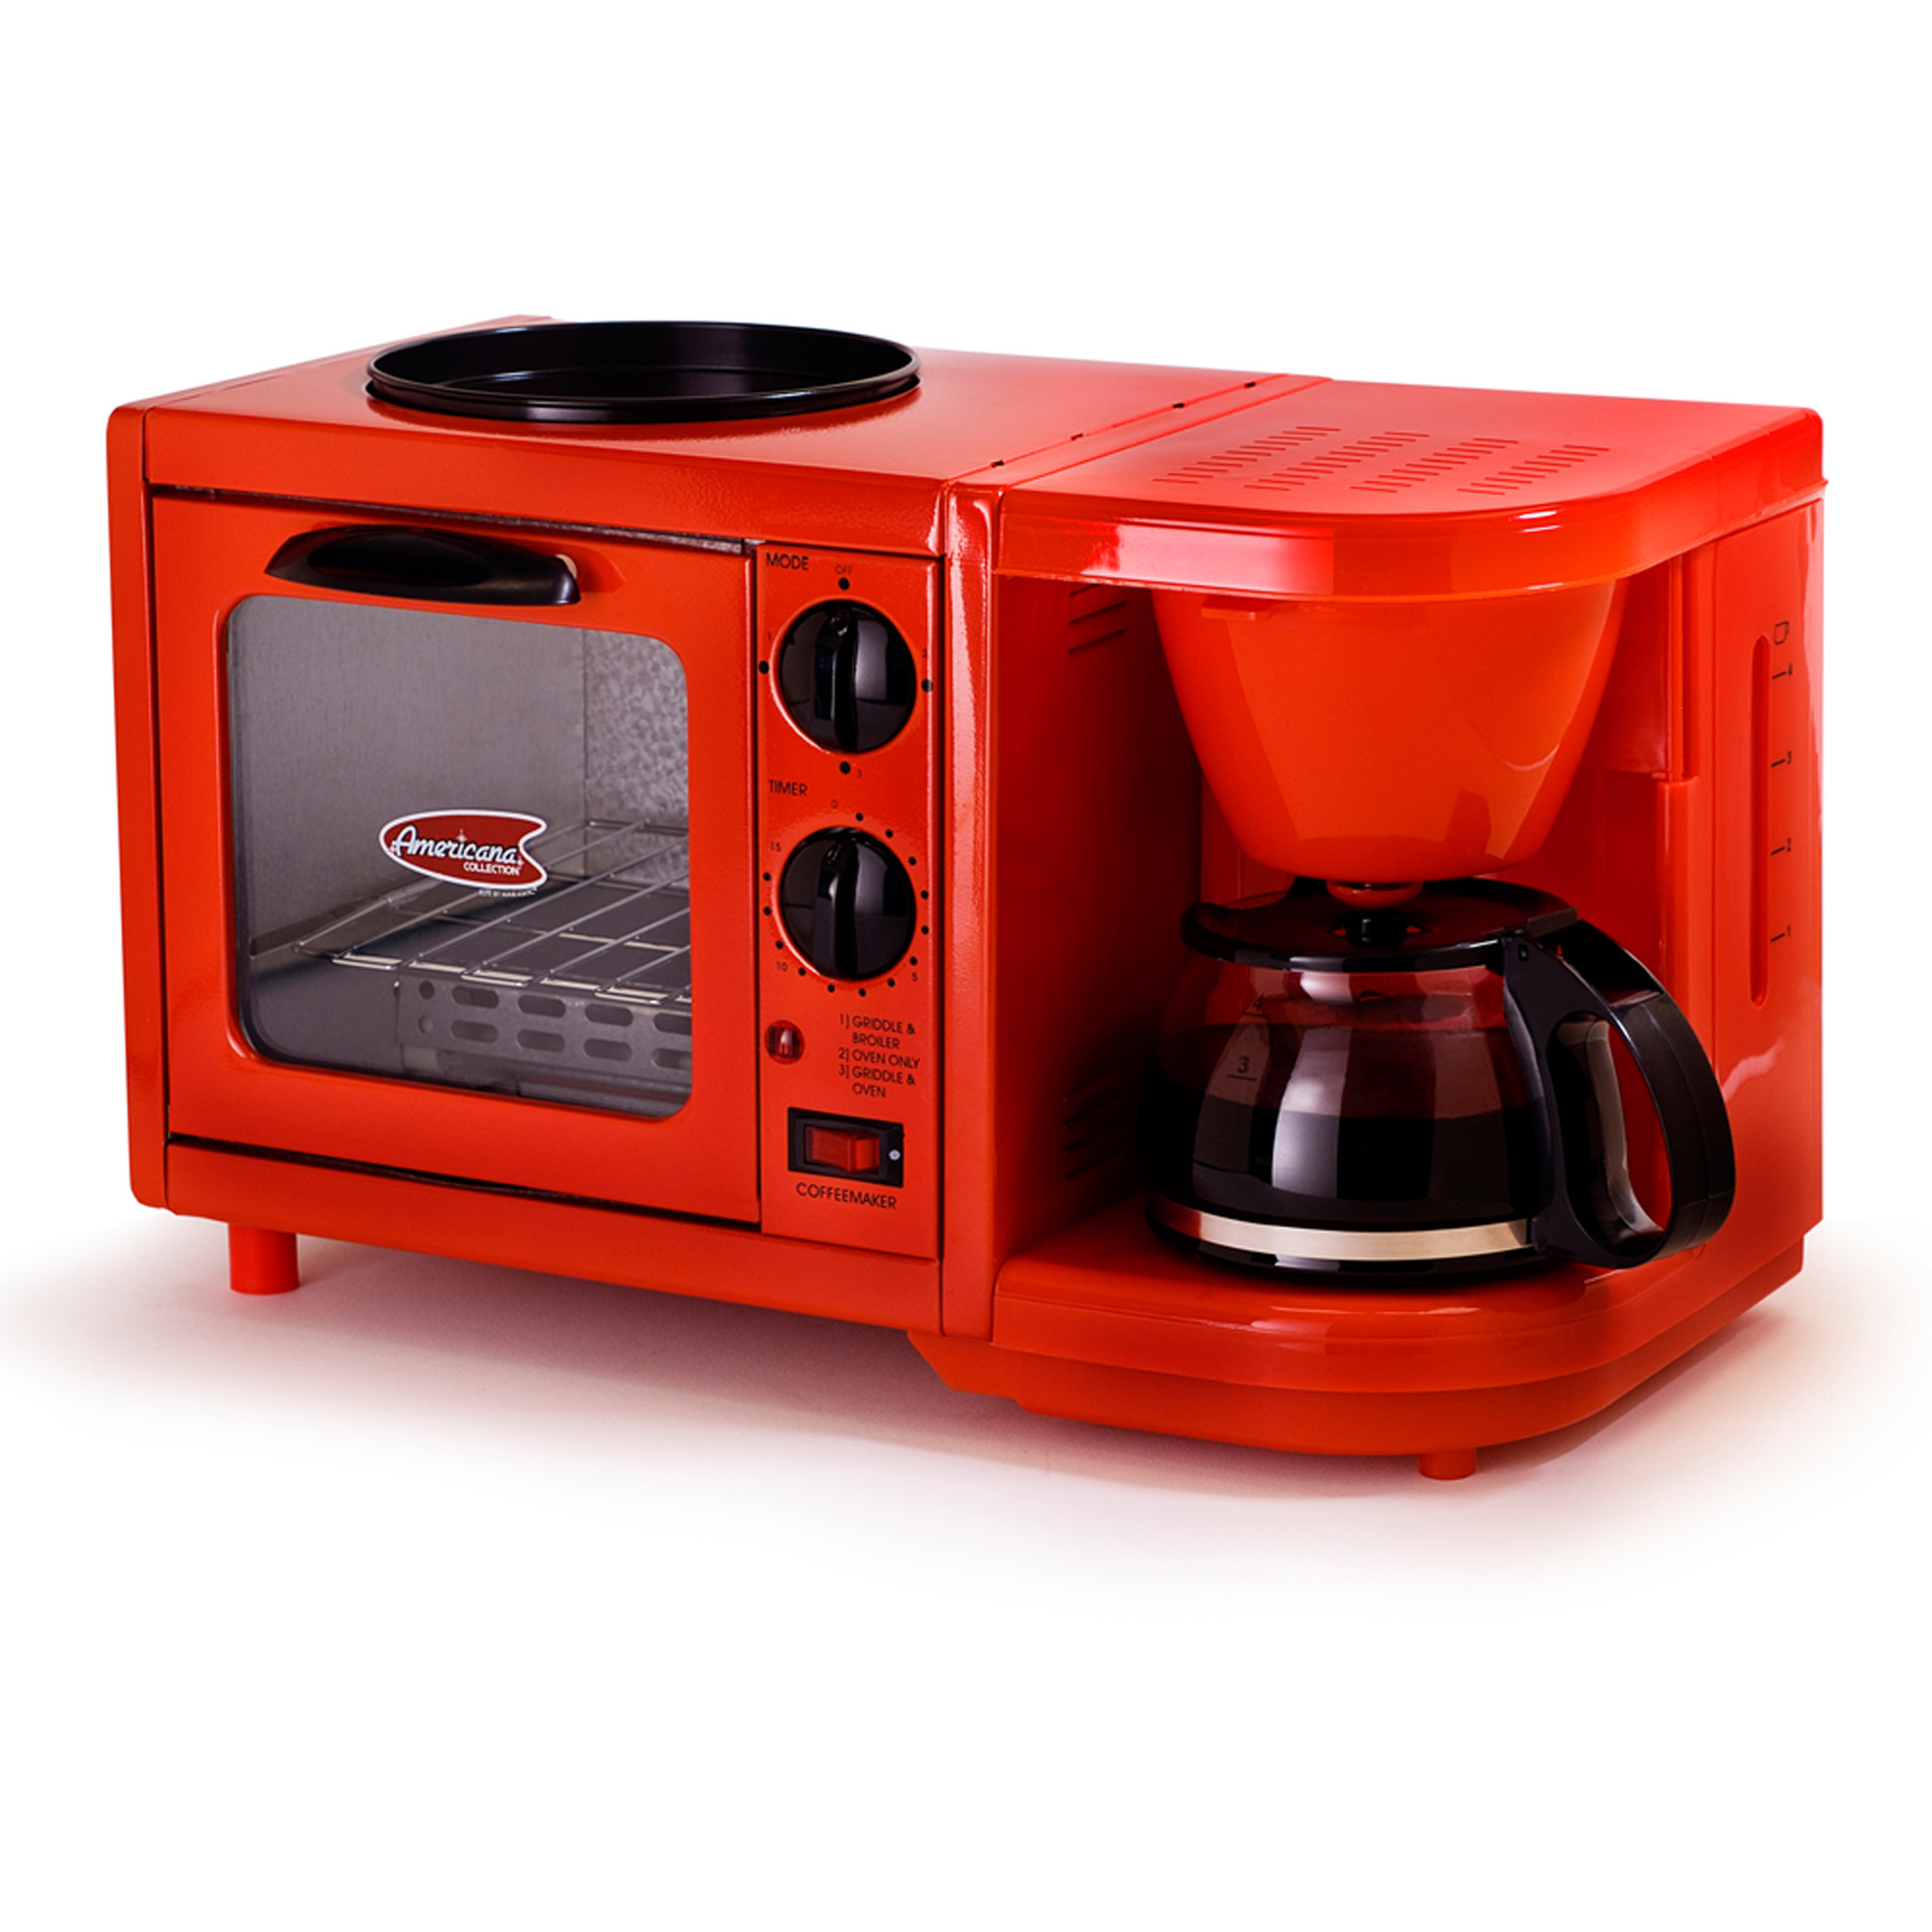 Americana by Elite EBK-200R 3-in-1 Mini Breakfast Shoppe, Coffee, Toaster Oven,